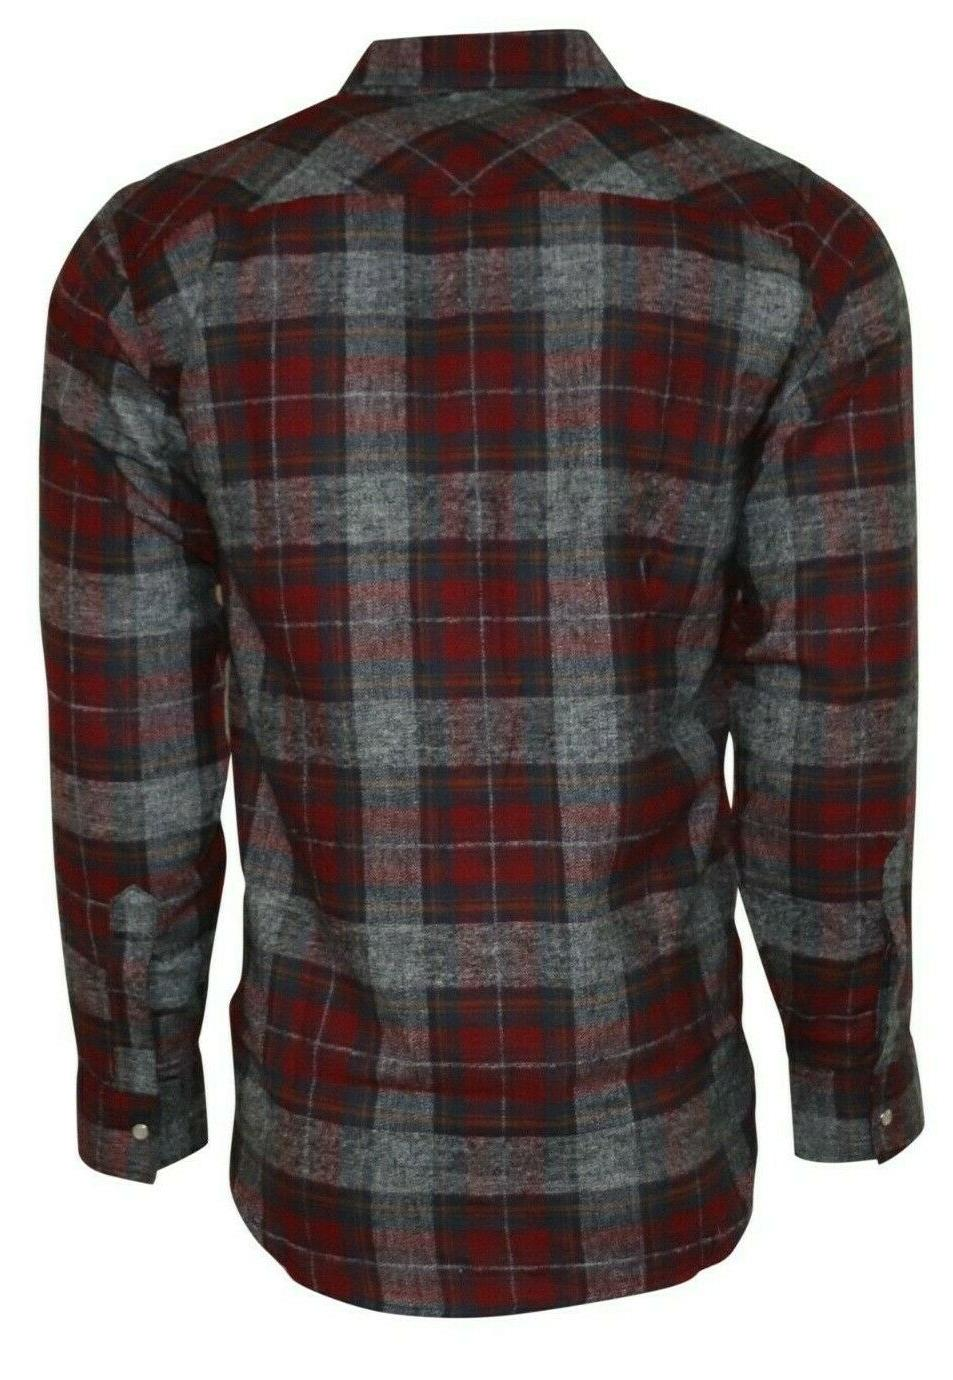 Plaid Shirt for Men, Sleeve Western Style